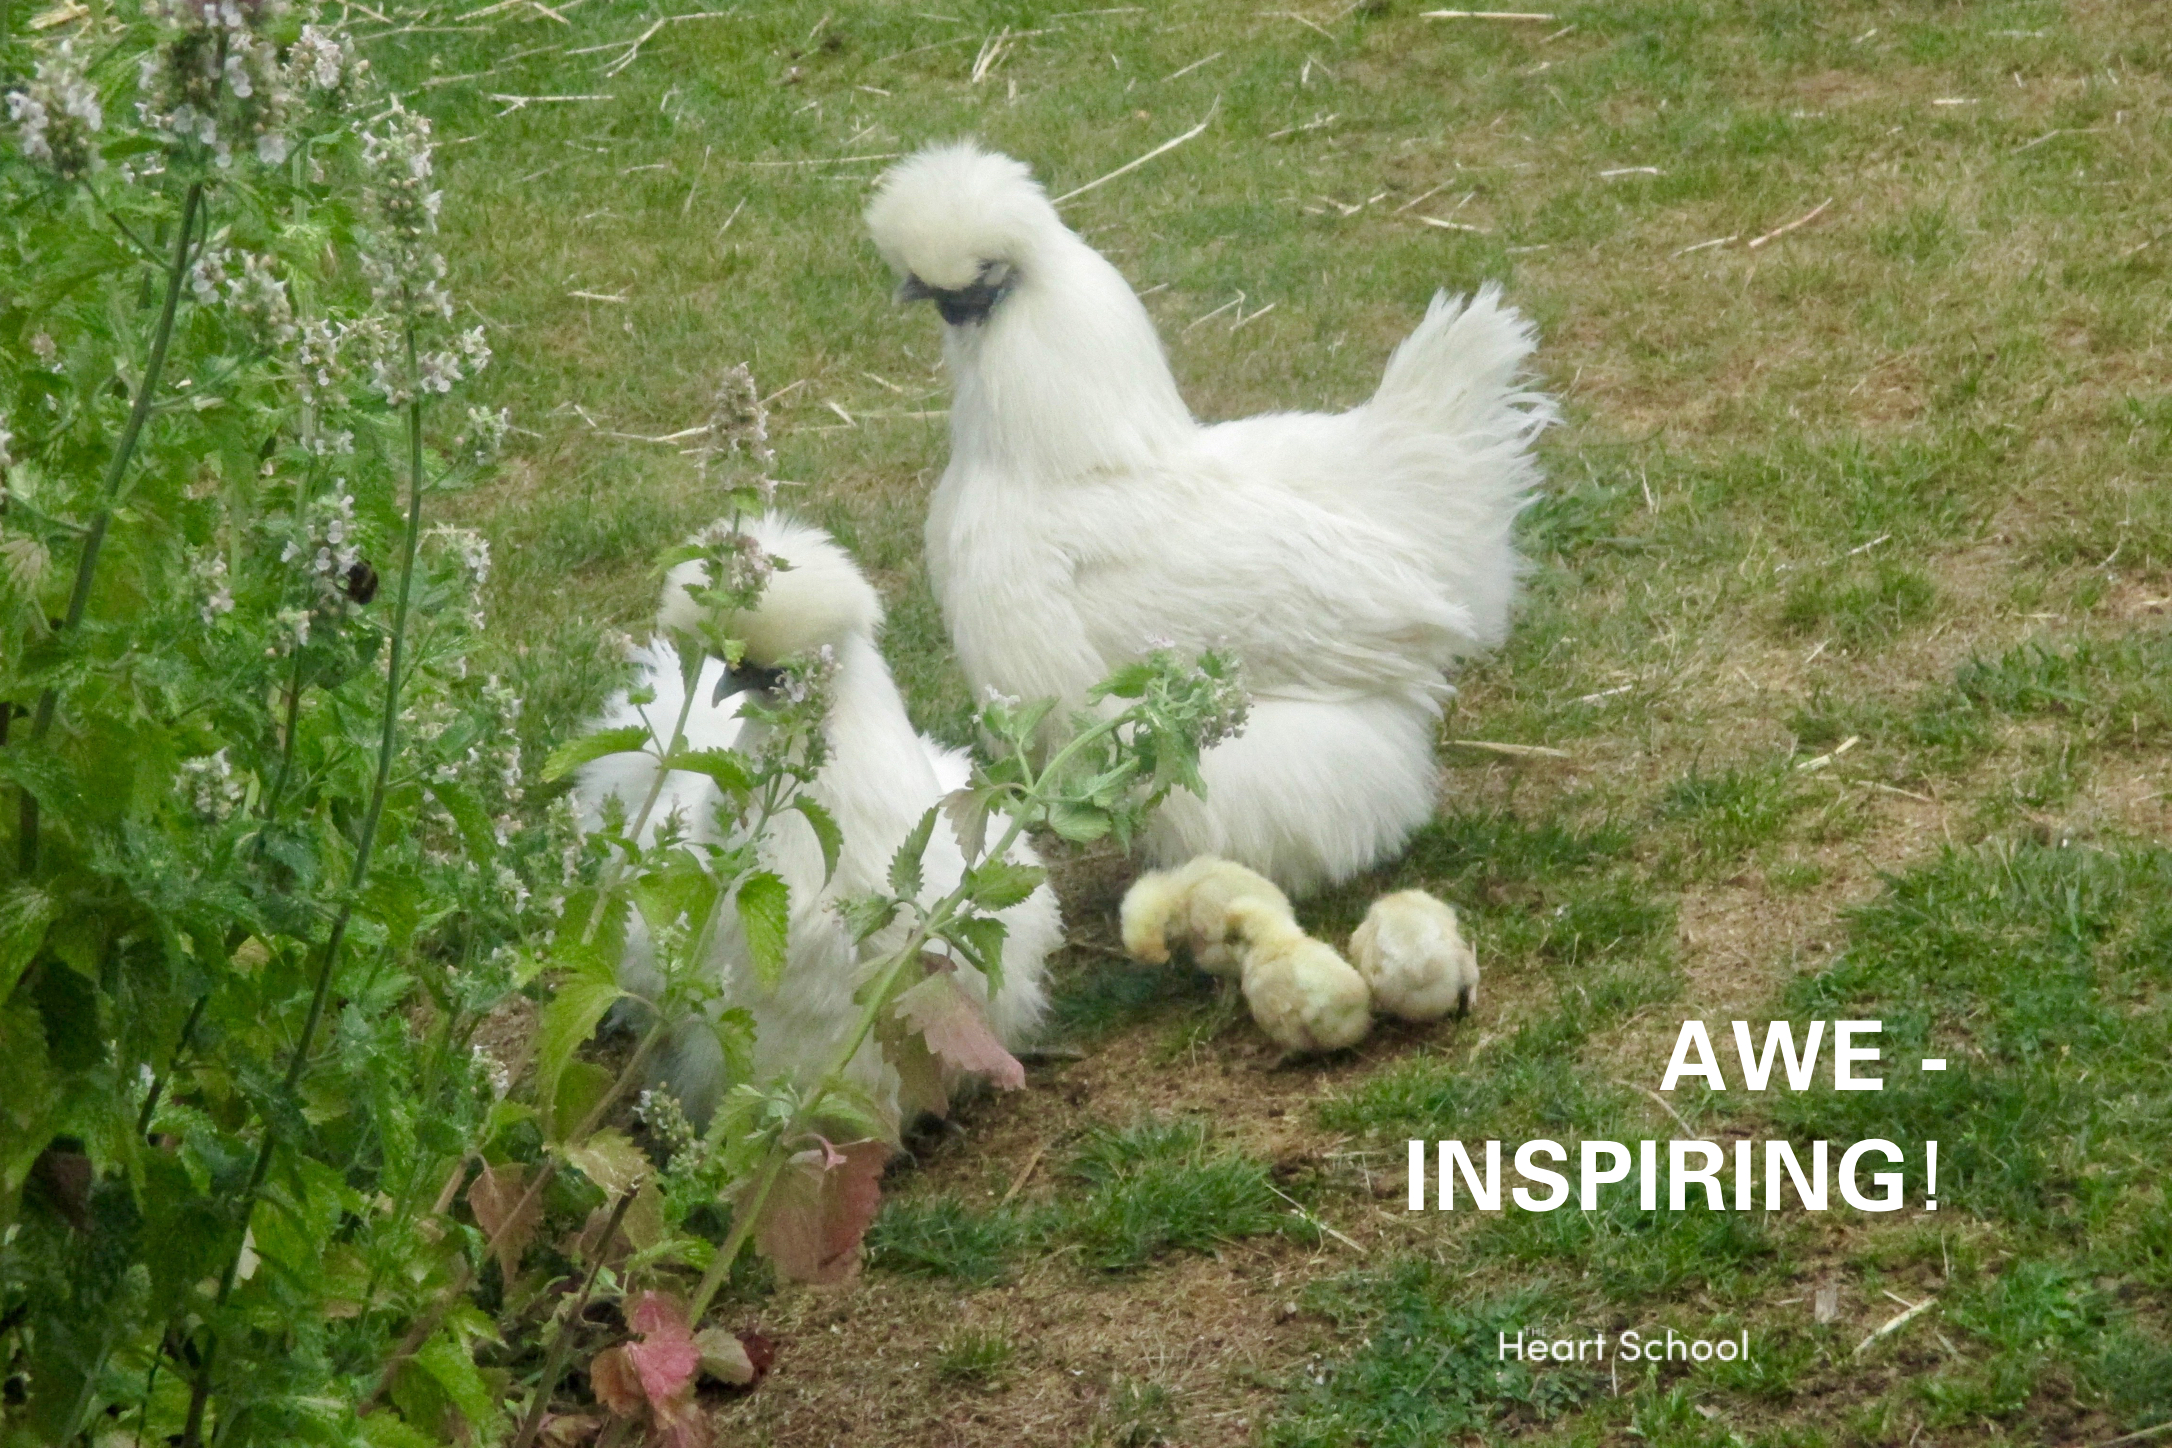 """""""Life is a miracle, handle it with care"""" - Caroline Naoroji  Authentic experience at its finest! There is nothing like new life to inspire wonder in our children and touch their hearts. Baby chicks in books are cute, but in real life?"""